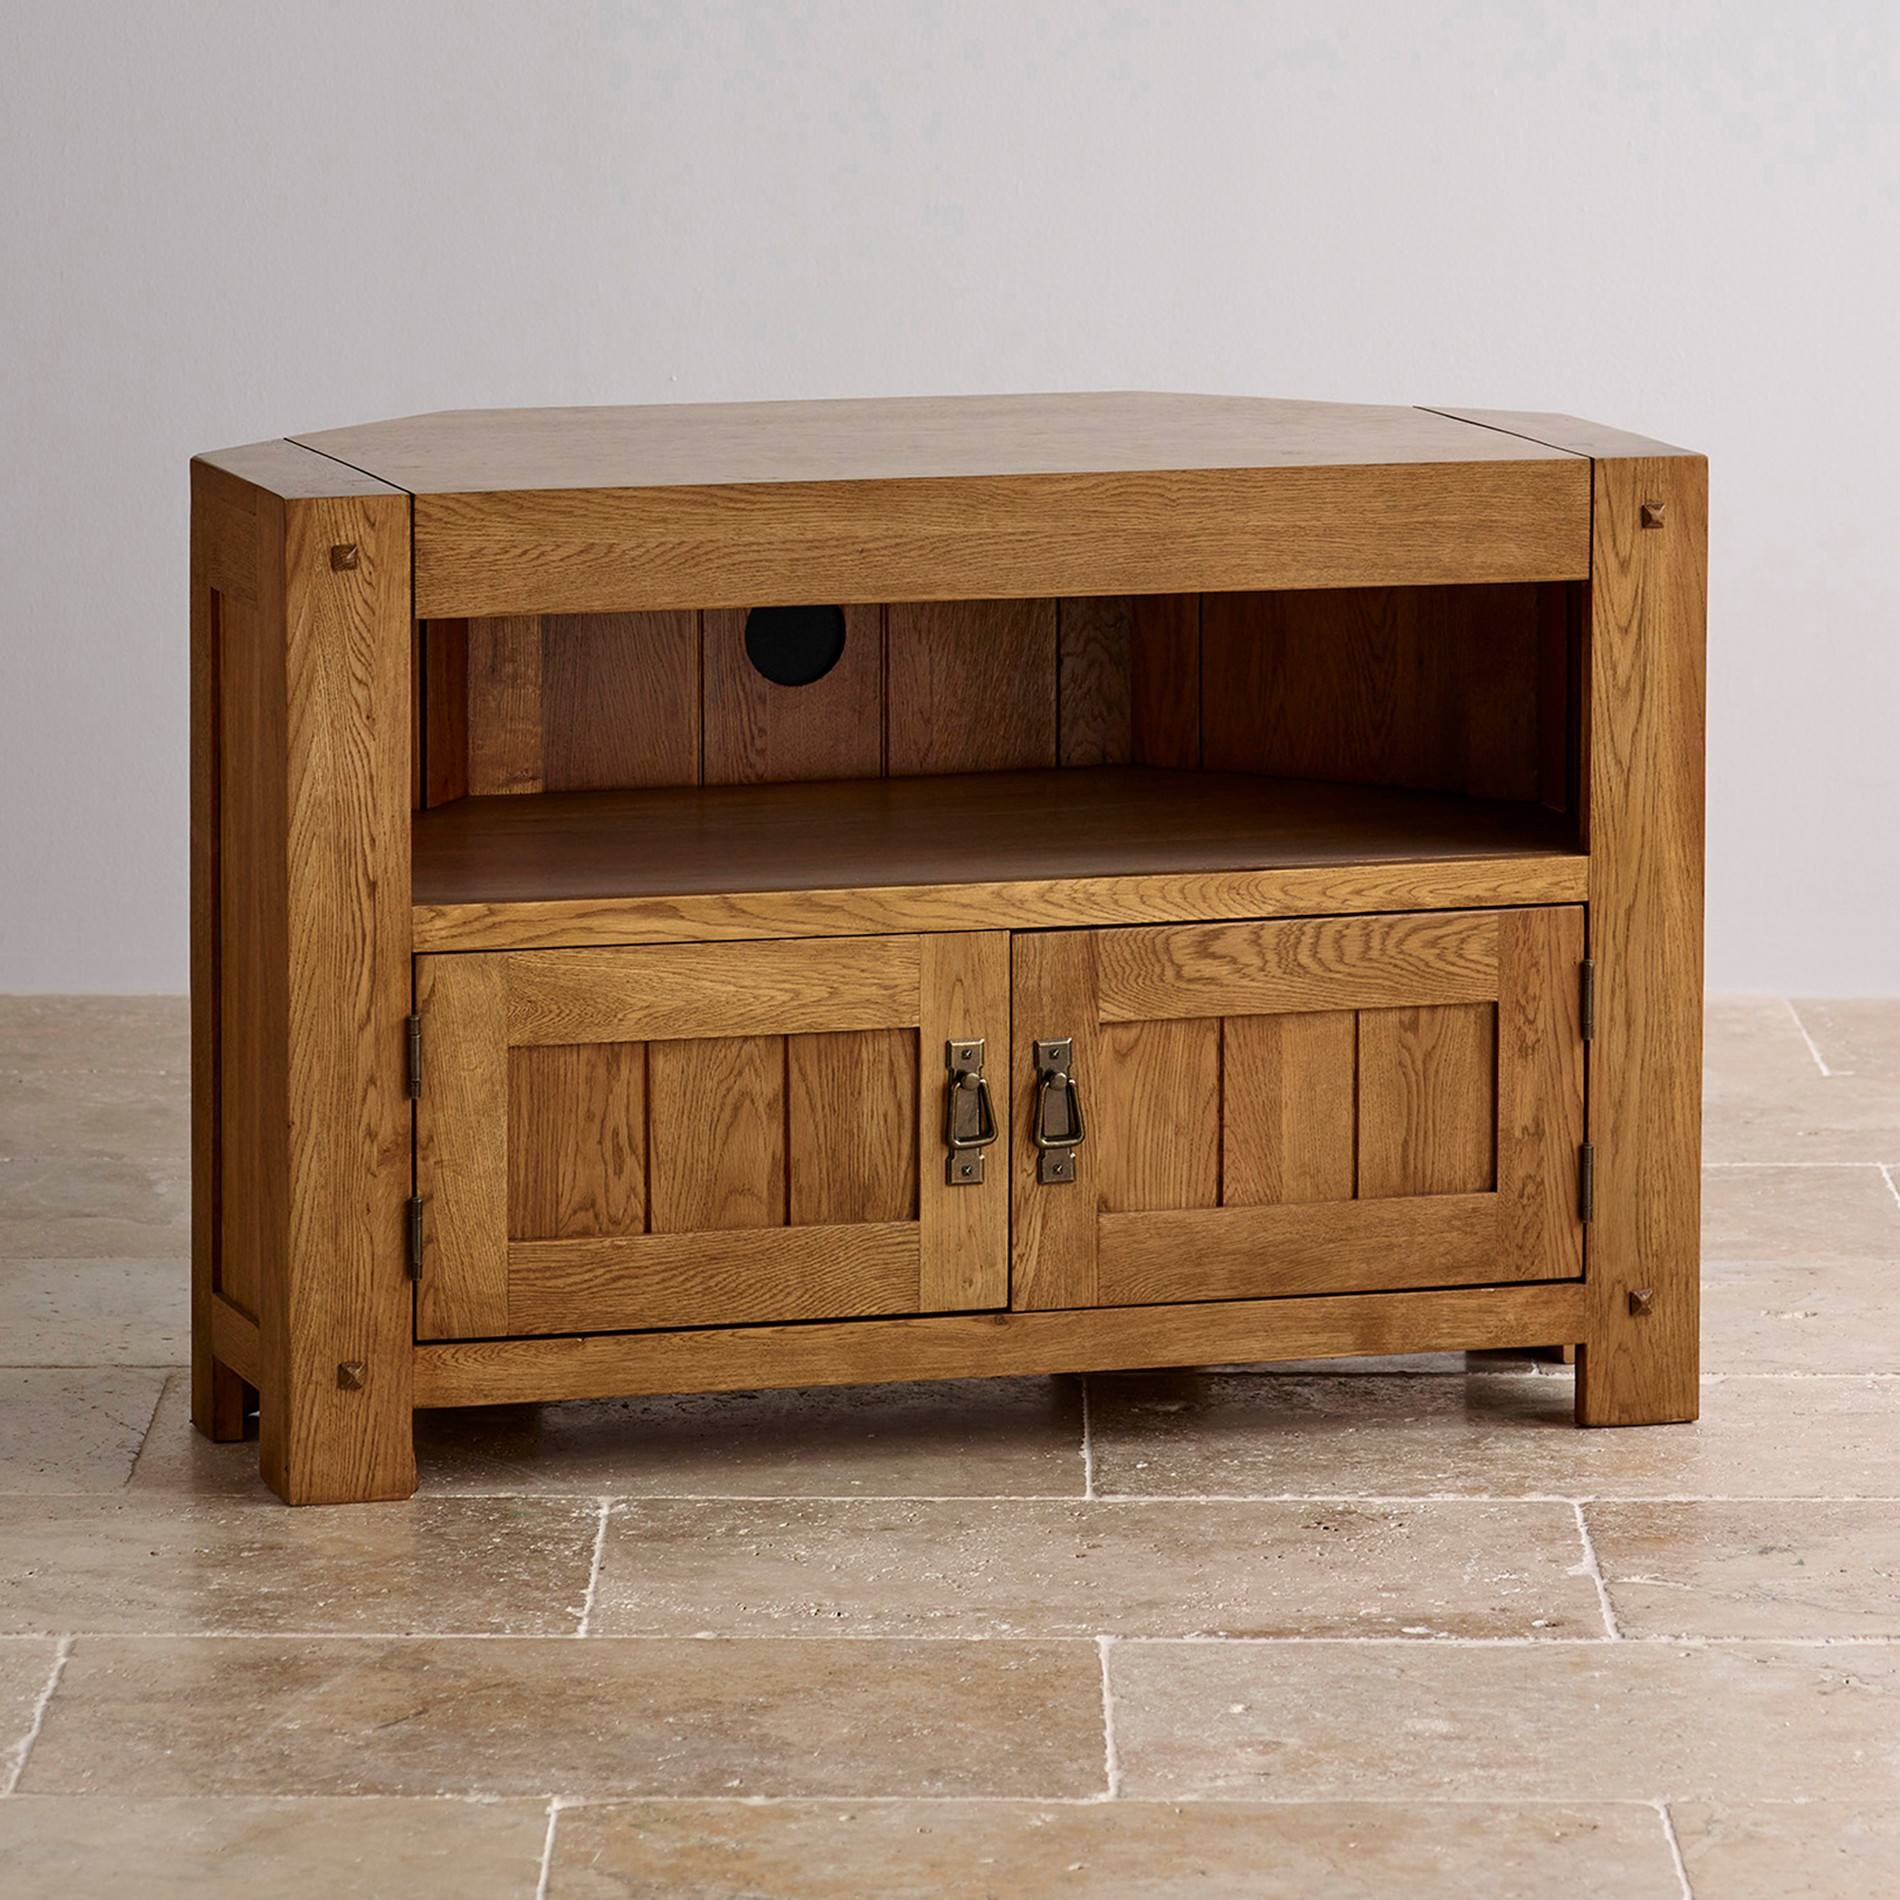 Quercus Corner Tv Cabinet In Rustic Oak | Oak Furniture Land inside Wooden Corner Tv Cabinets (Image 7 of 15)